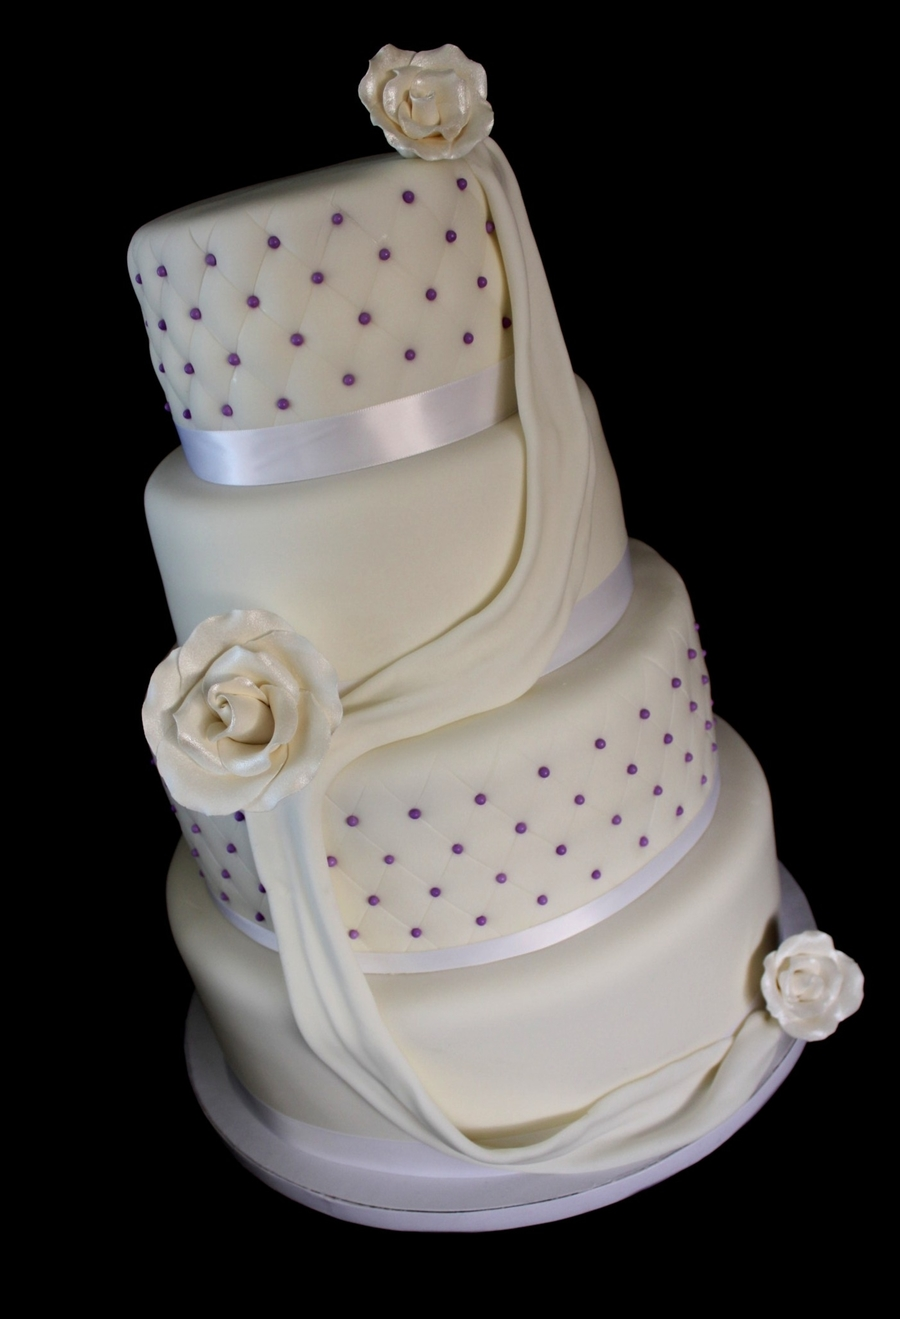 Diamond Quilted Wedding Cake - CakeCentral.com : quilted wedding cake - Adamdwight.com